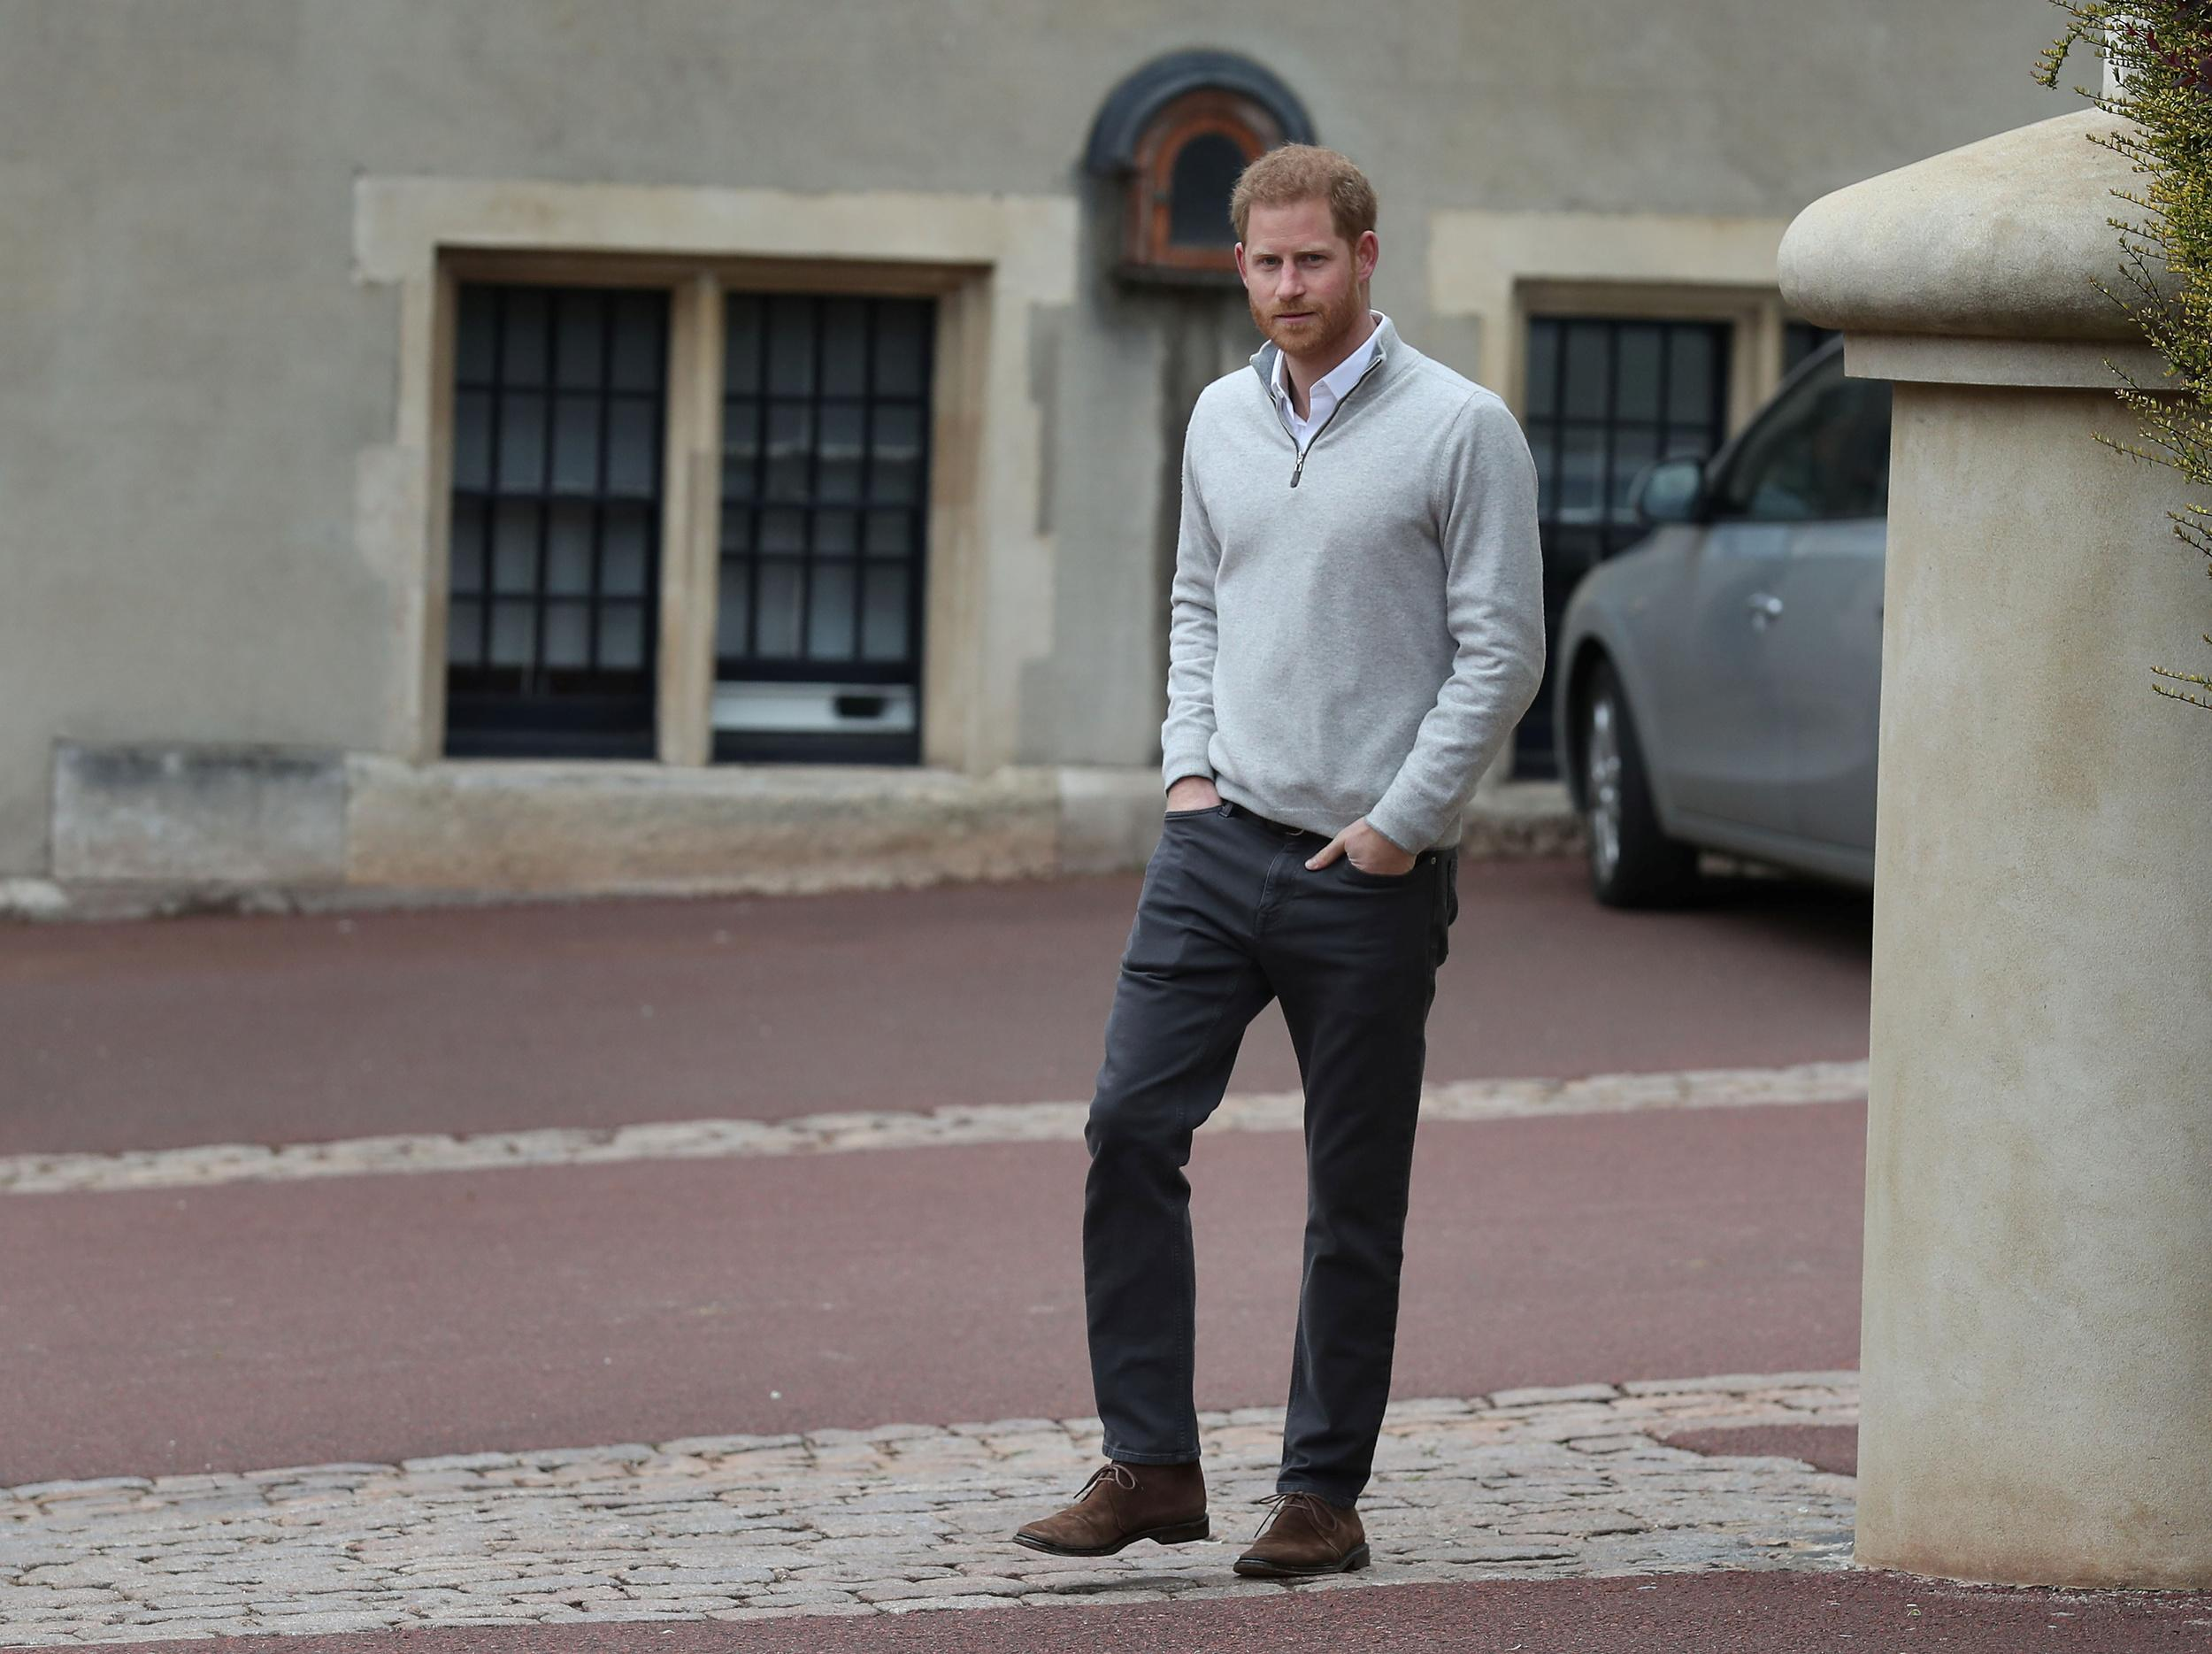 Britain's Prince Harry walks up to the awaiting media after Meghan, Duchess of Sussex, gave birth to a baby boy, at Windsor Castle, Berkshire county, Britain May 6, 2019. Steve Parsons/Pool via REUTERS